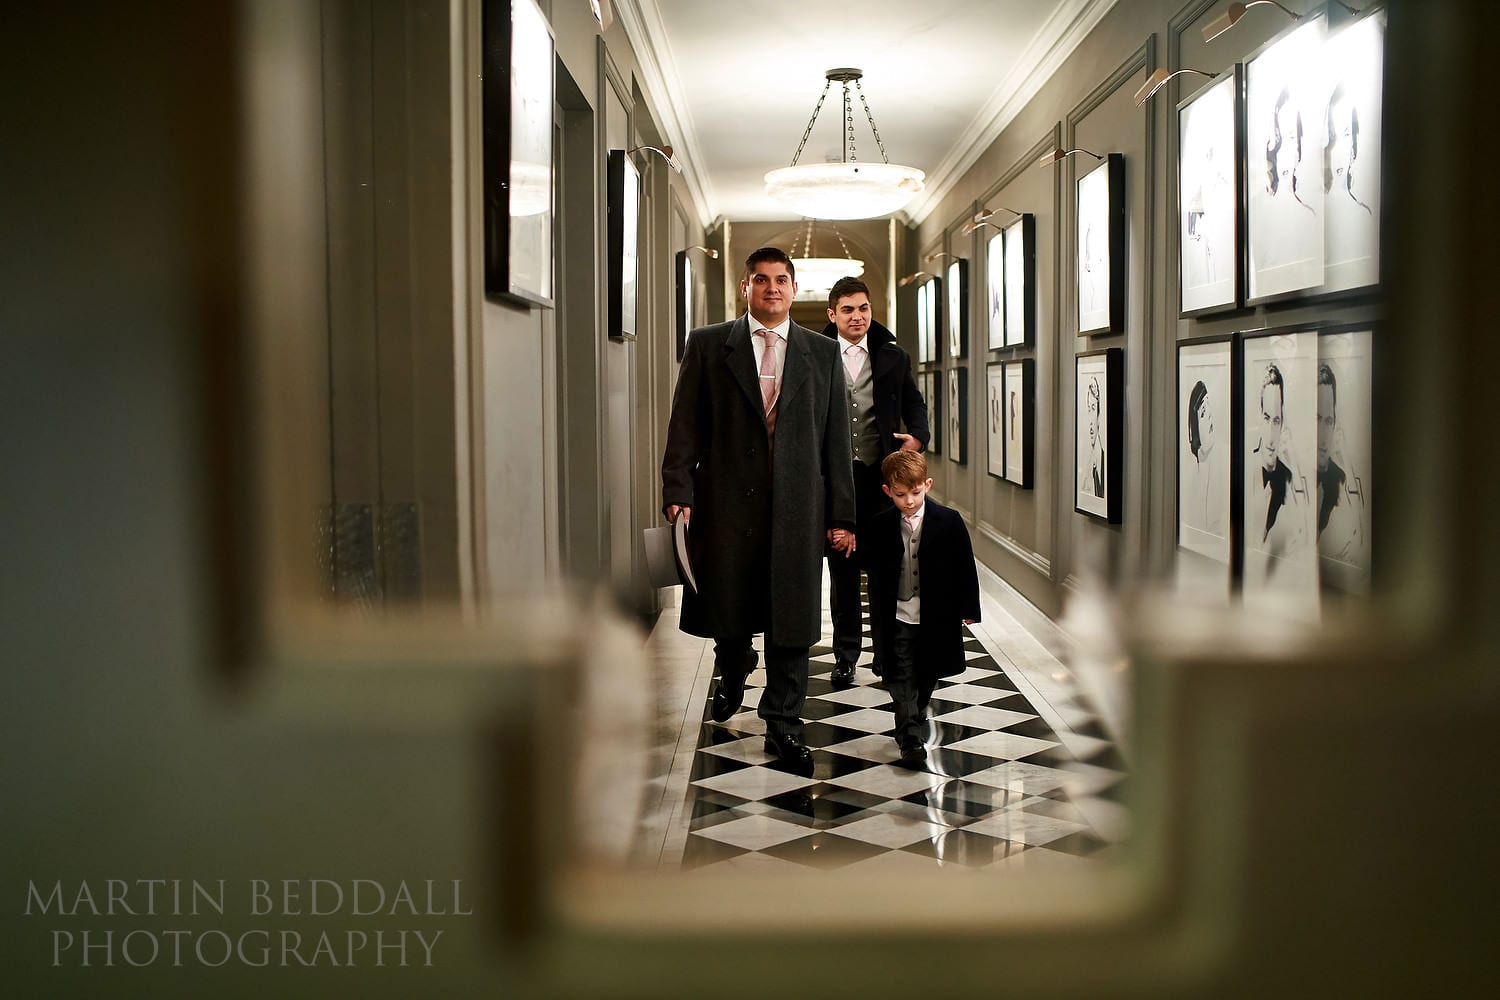 The groom, his son and his brother arrive at Claridges for the wedding ceremony